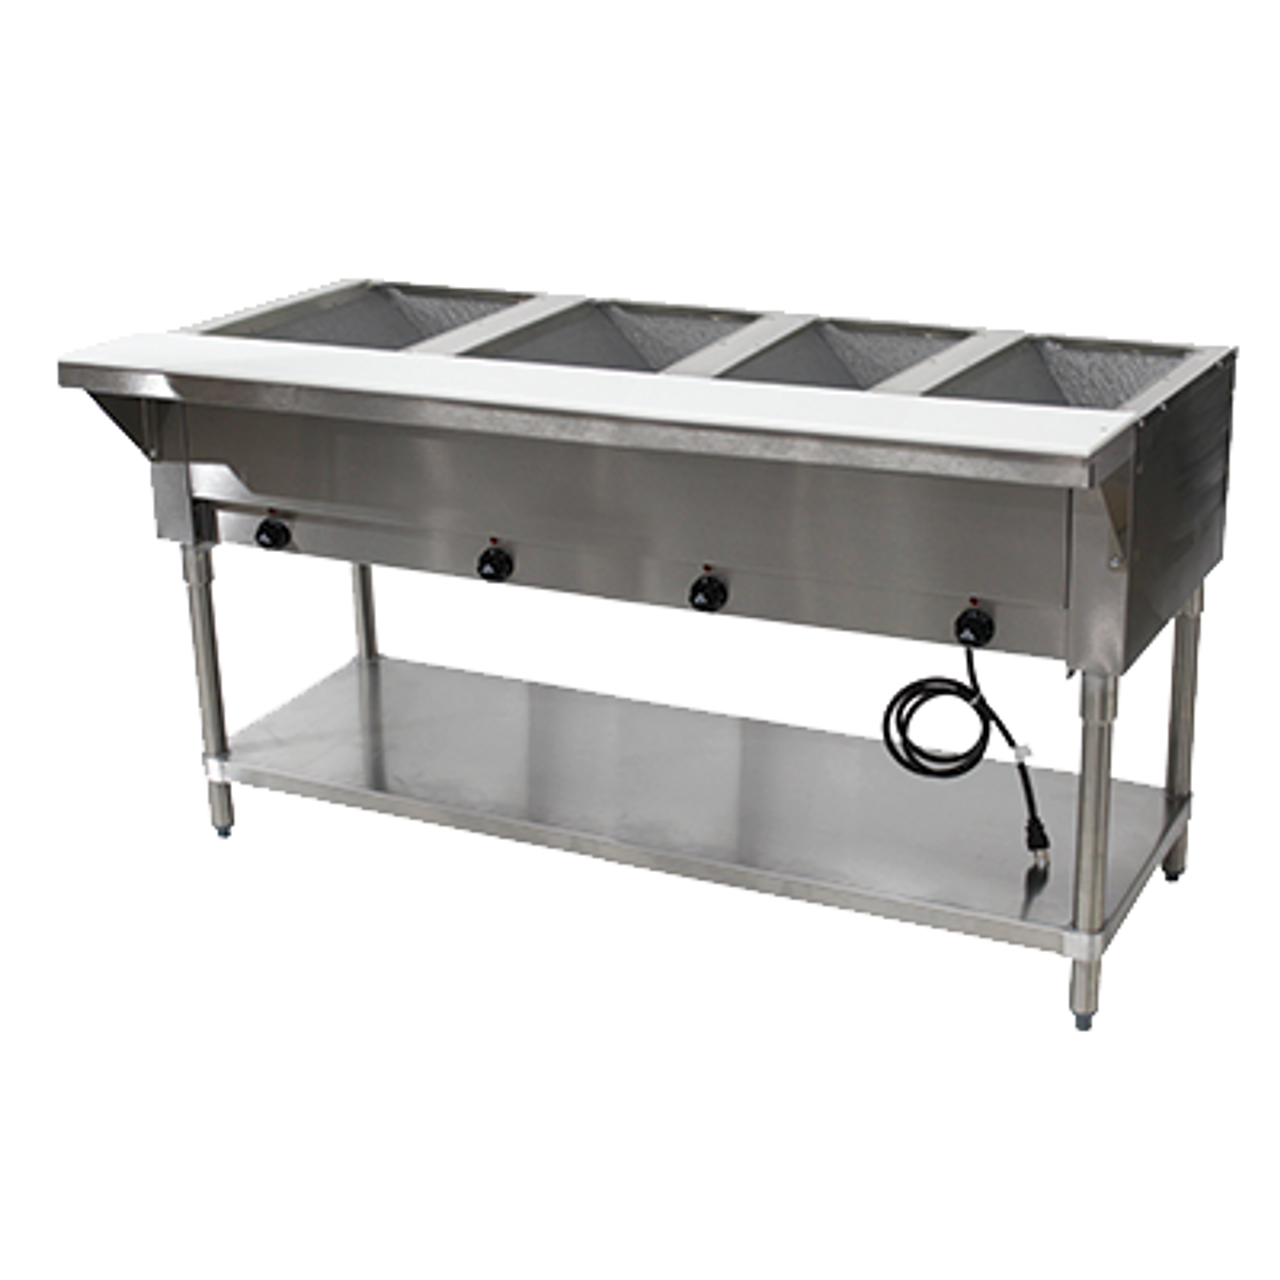 """Hot Food Table, electric, 62-7/16""""W x 30-5/8""""D x 34-3/8""""H, (4) 12"""" x 20"""" wells (accommodates pan inserts up to 7-3/4"""" deep), individual infinite controls, stainless steel top,  stainless steel 8""""D support shelf with removable 3/8"""" thick poly cutting board, galvanized open base with undershelf, UL, NSF (120v)"""